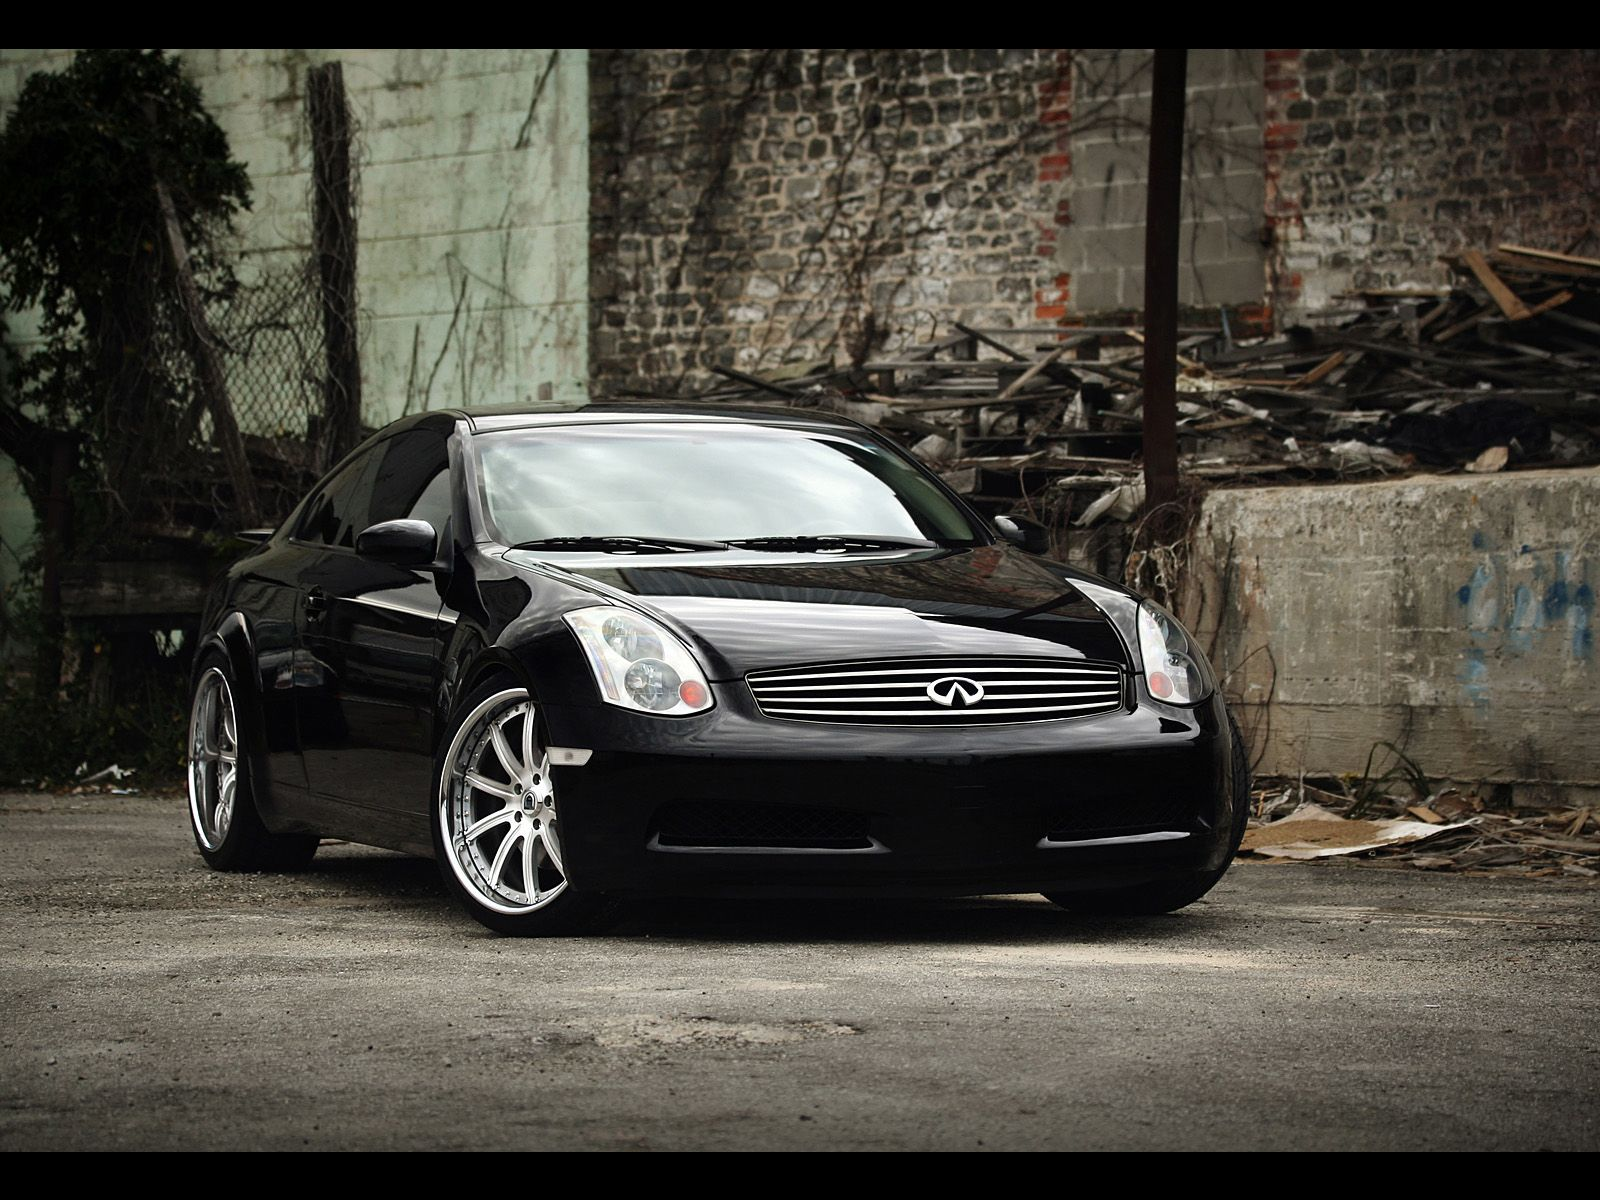 weili start related network miles sale infiniti automotive manual for w infinity images coupe